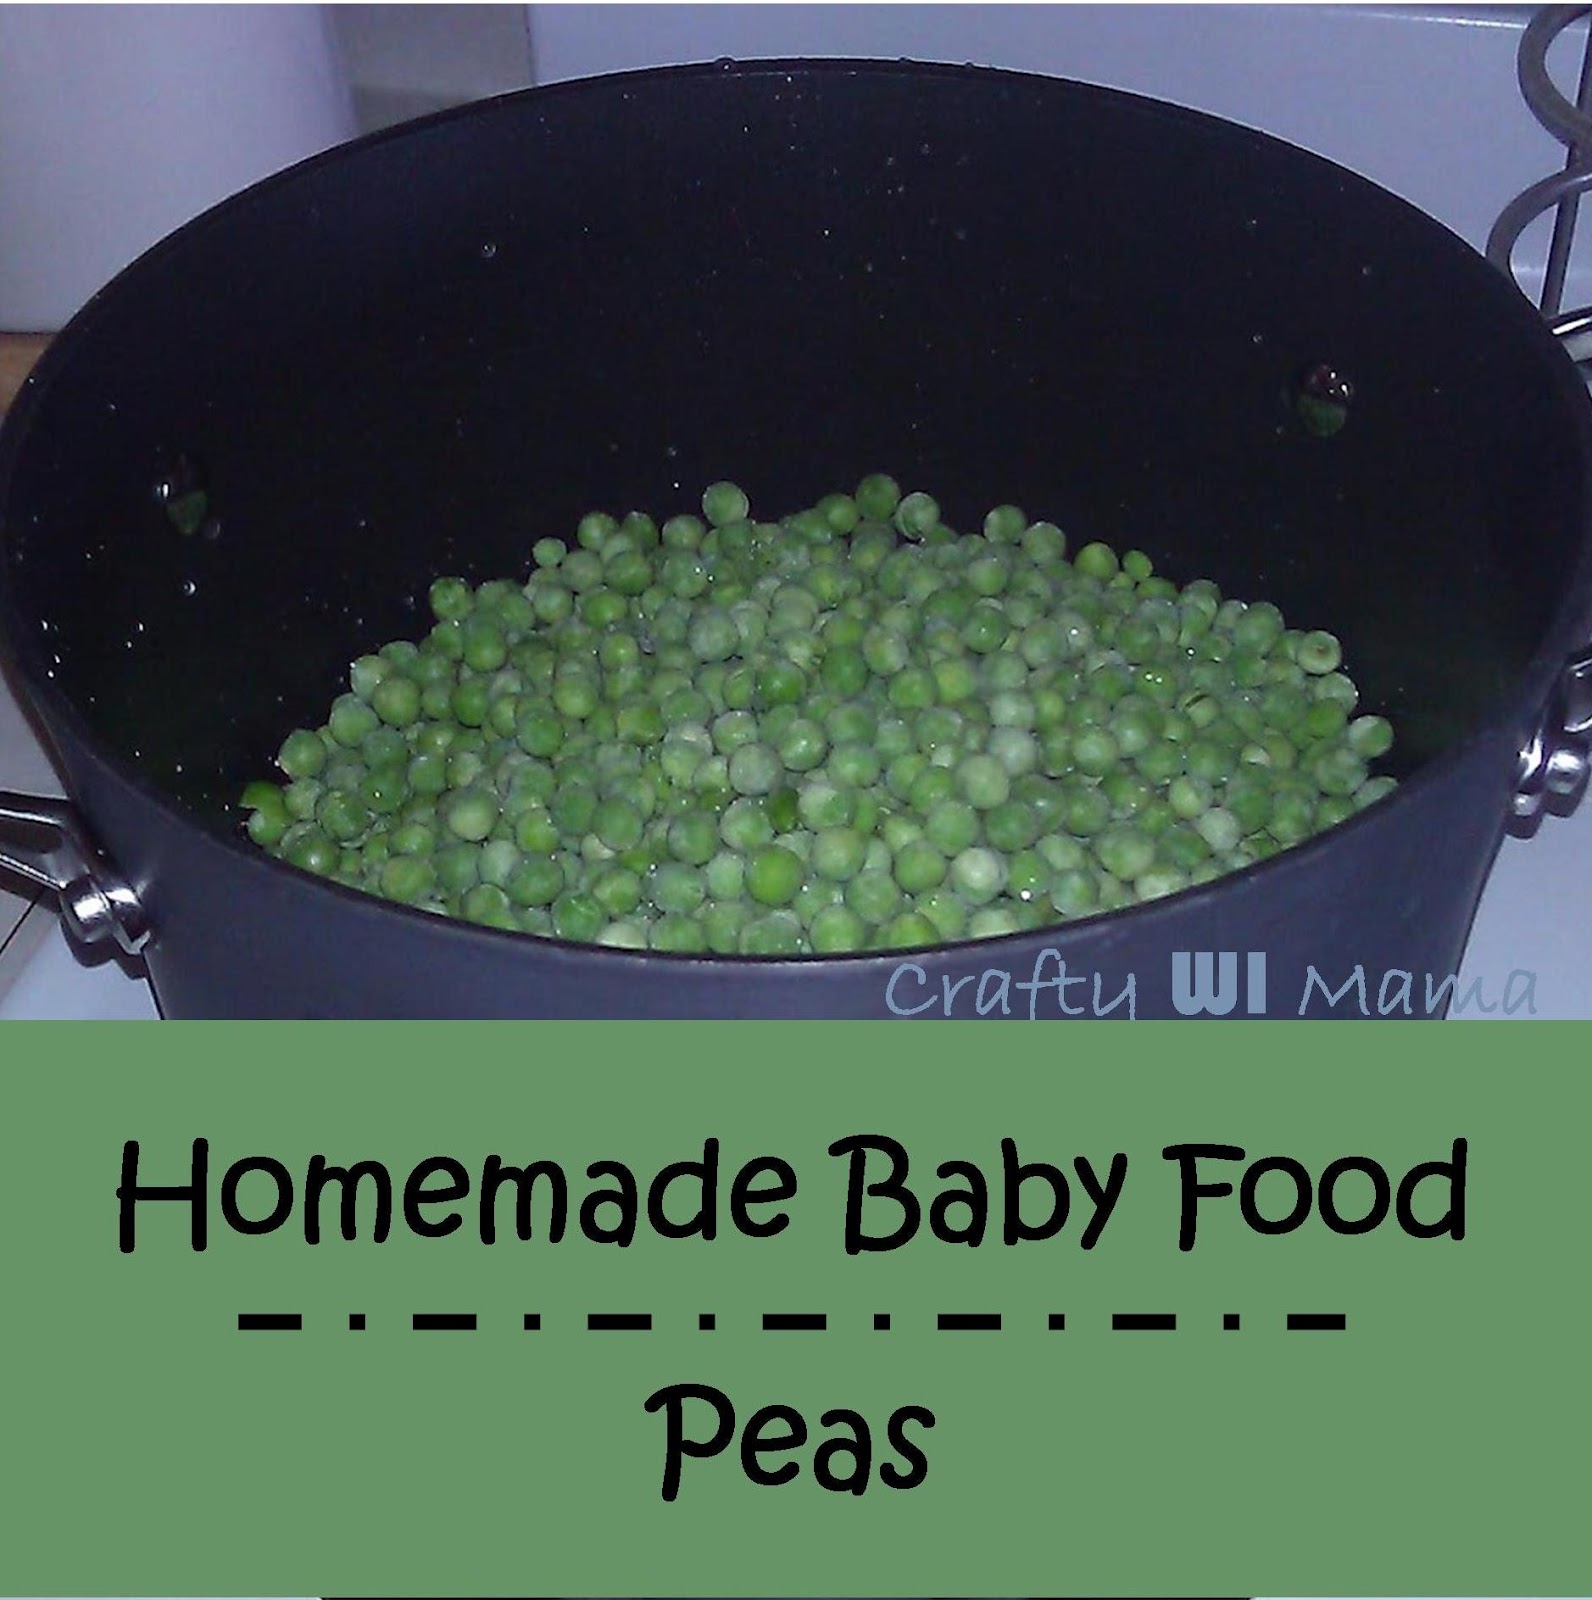 Crafty wi mama diy homemade baby food frozen peas why did i not think of this before seriously i feel like kicking myself making baby food from frozen veggiesfruit is so much easier forumfinder Image collections